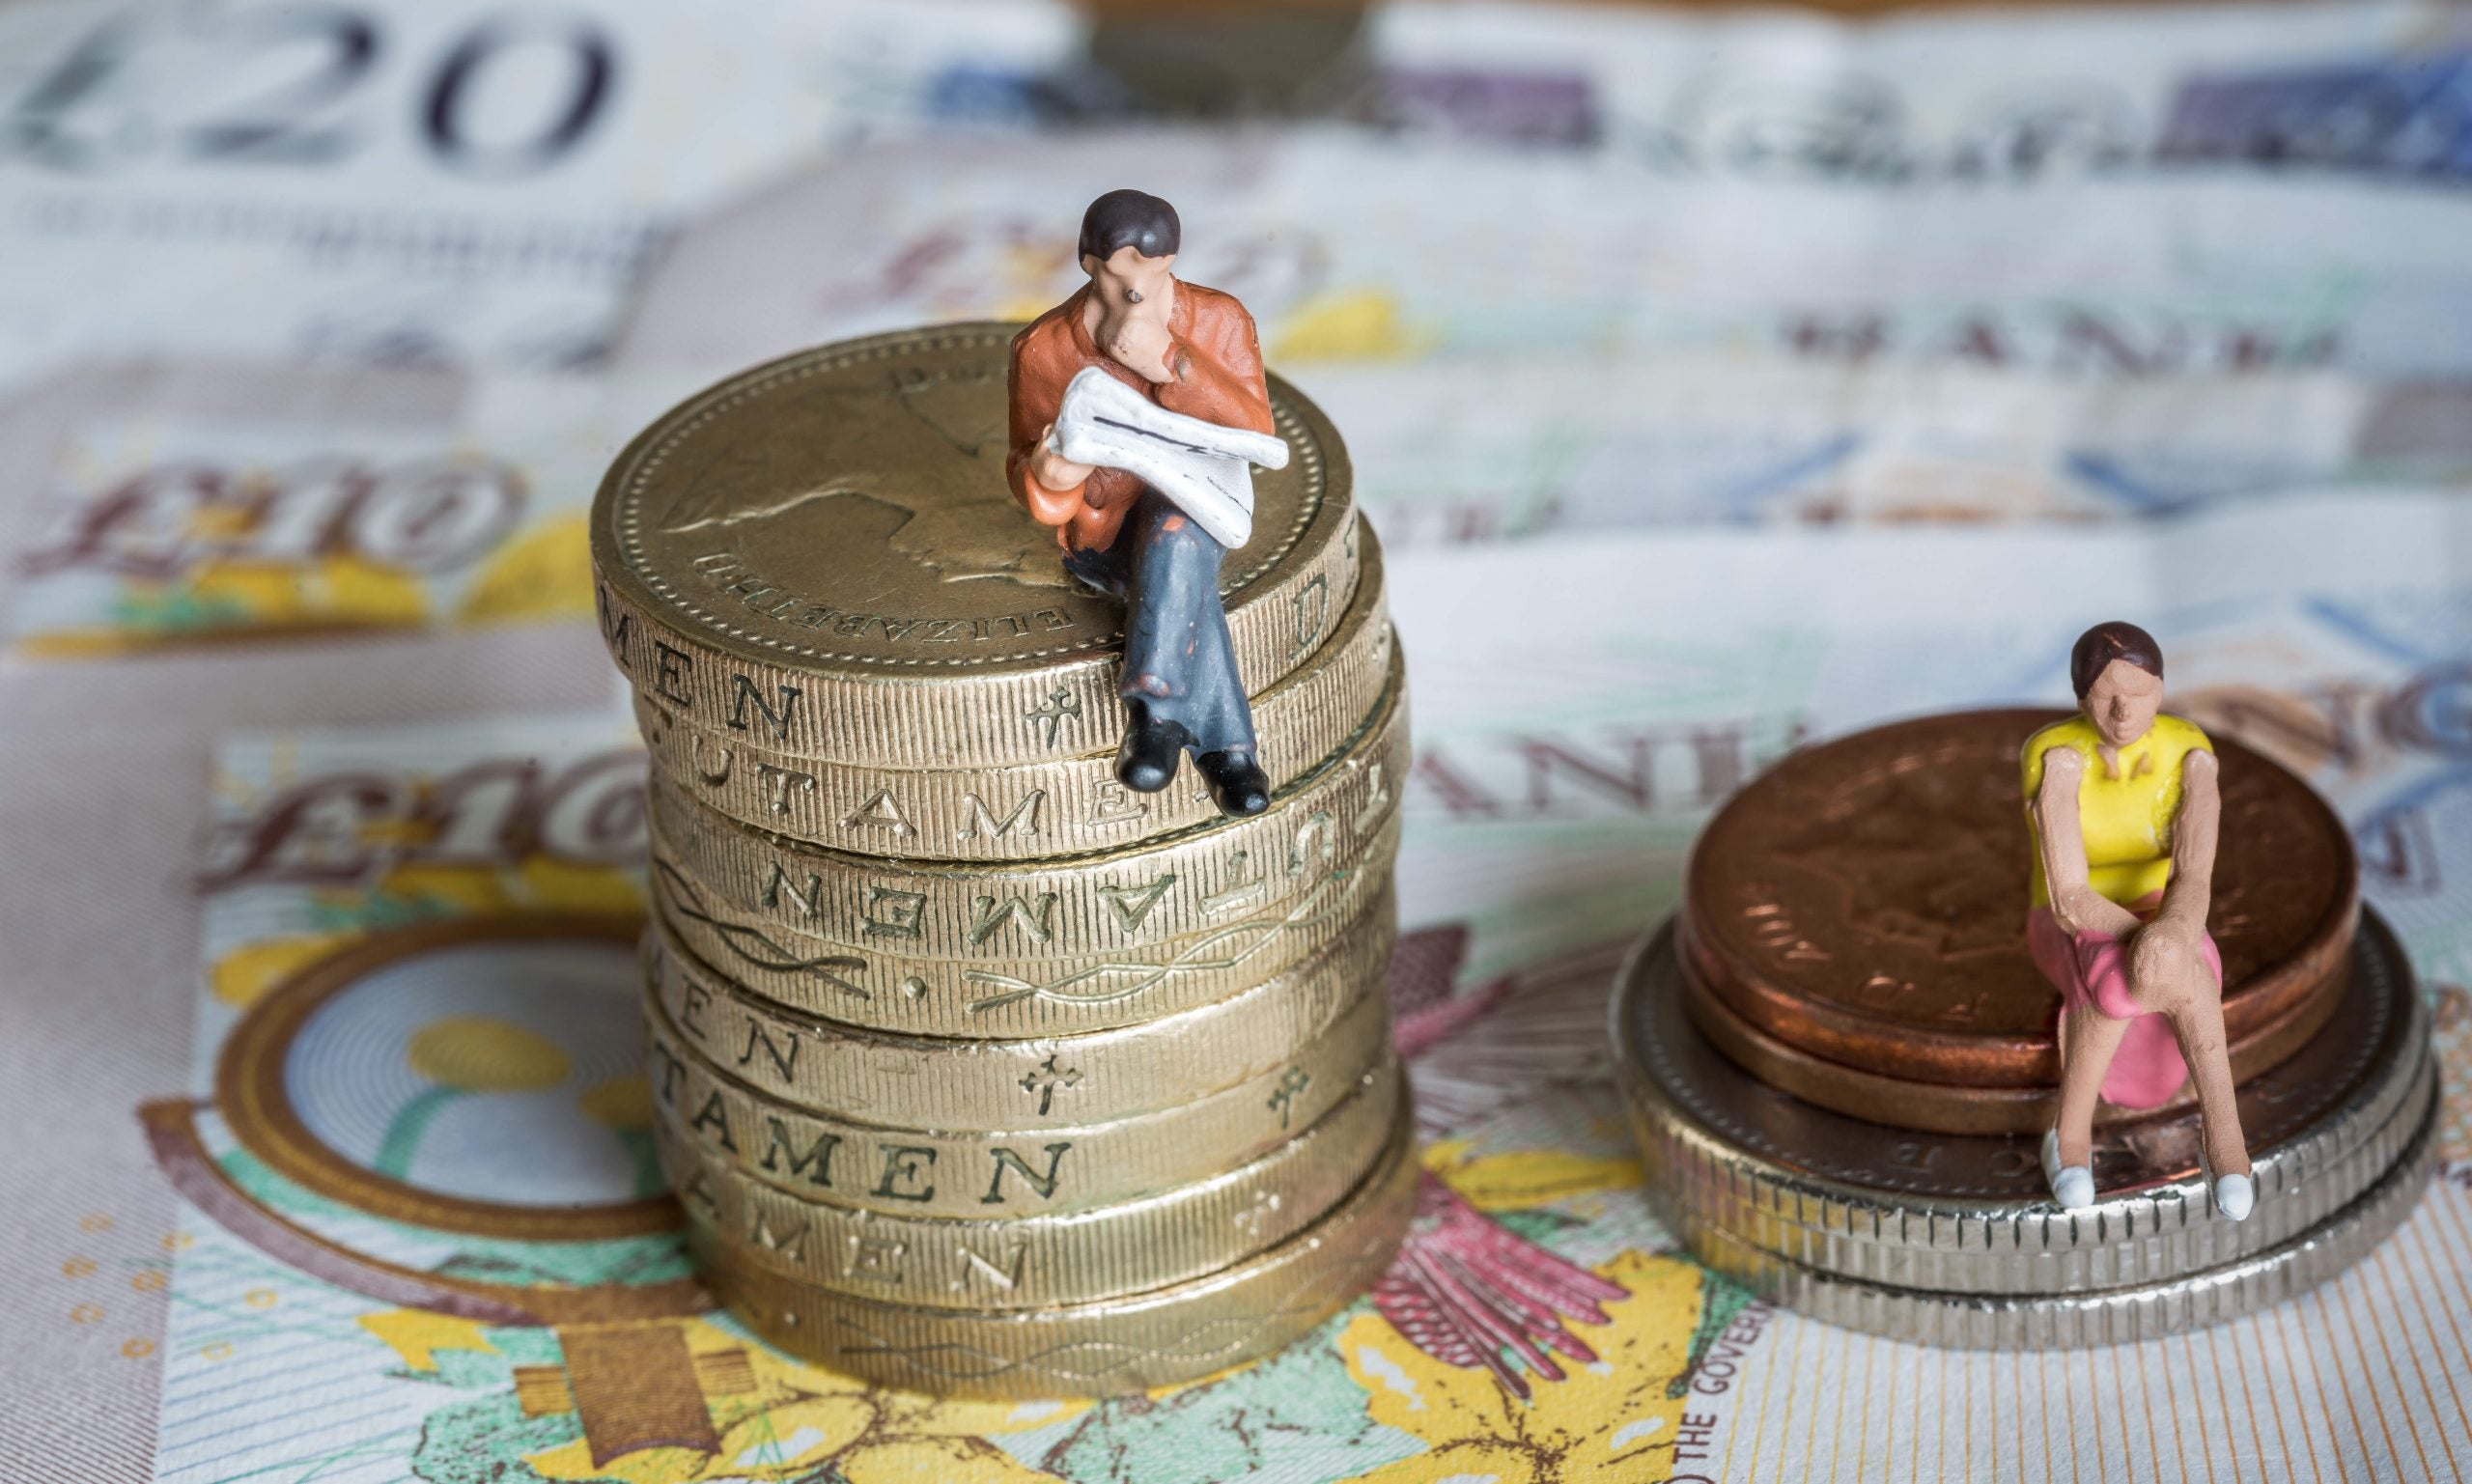 The gender pay gap is only half the story: women lose out on pensions, too